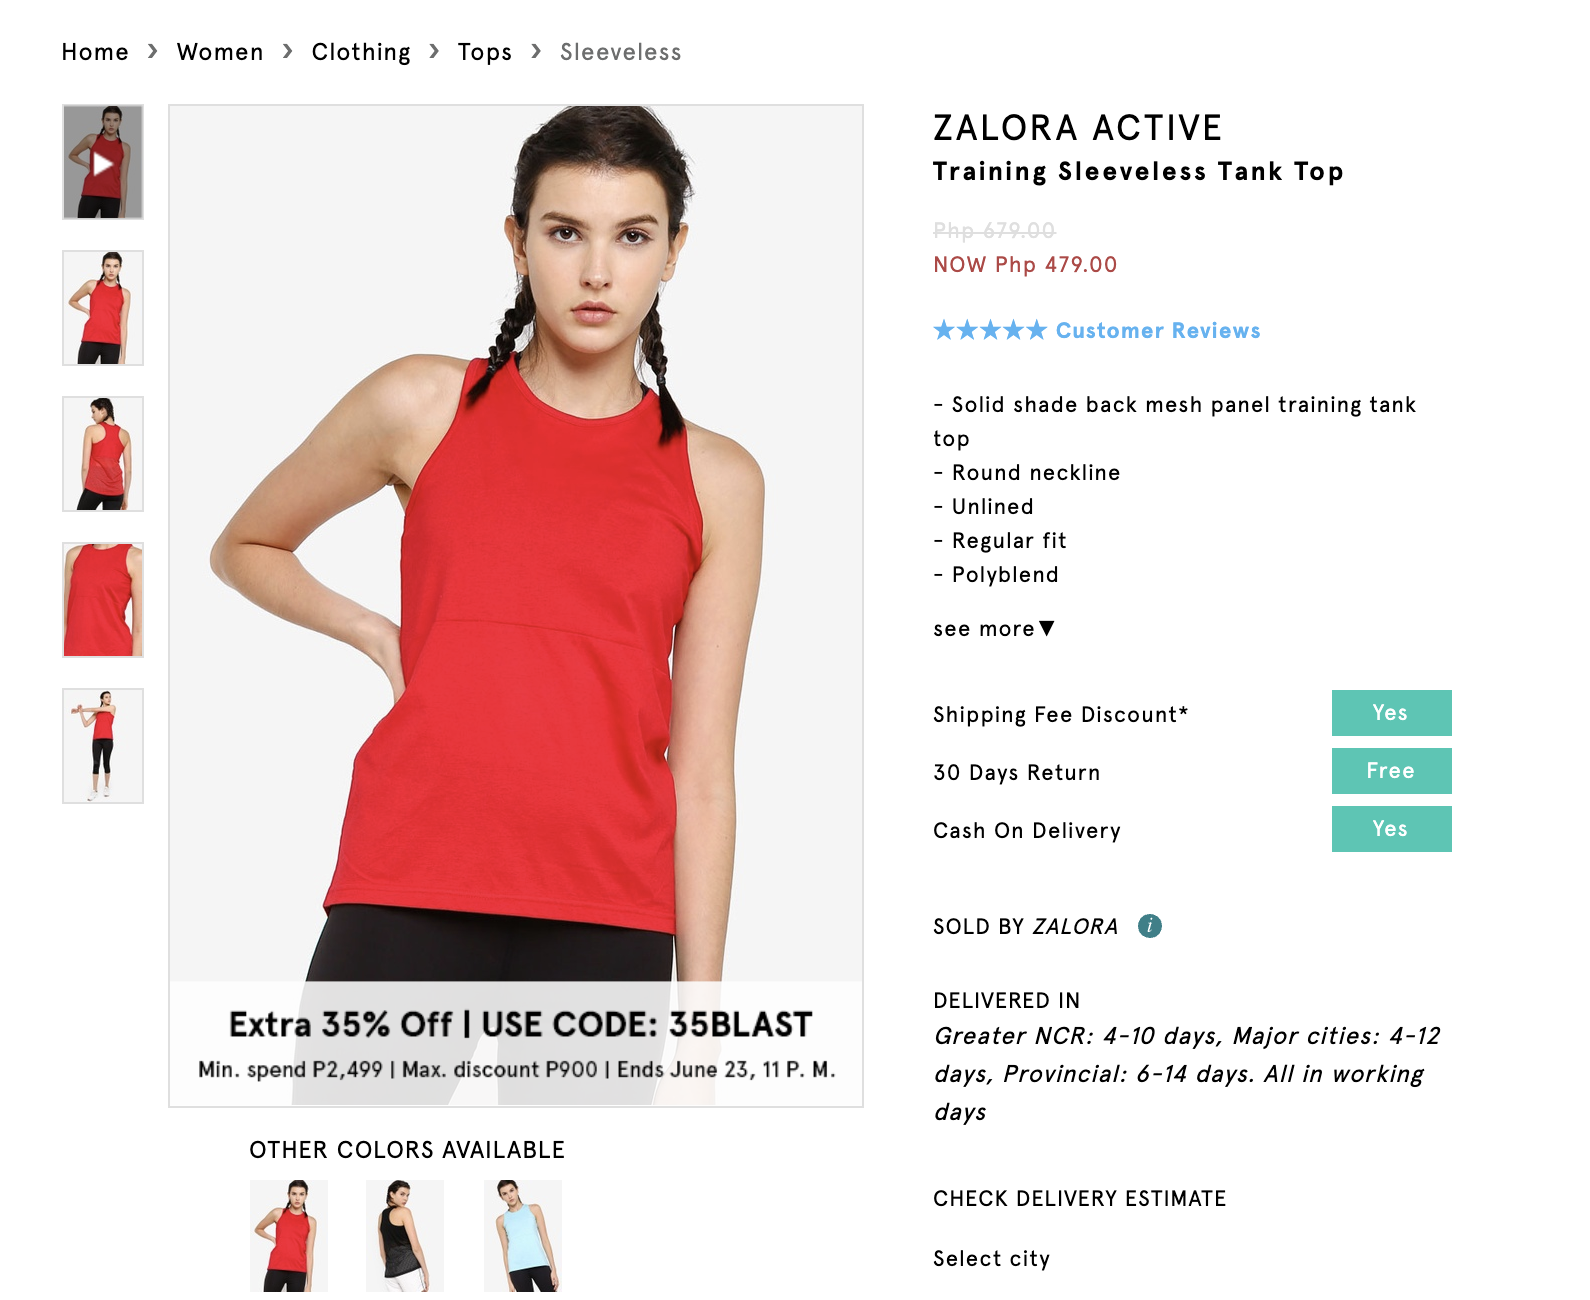 Screenshot of Zalora Active Training Sleeveless Tank Top